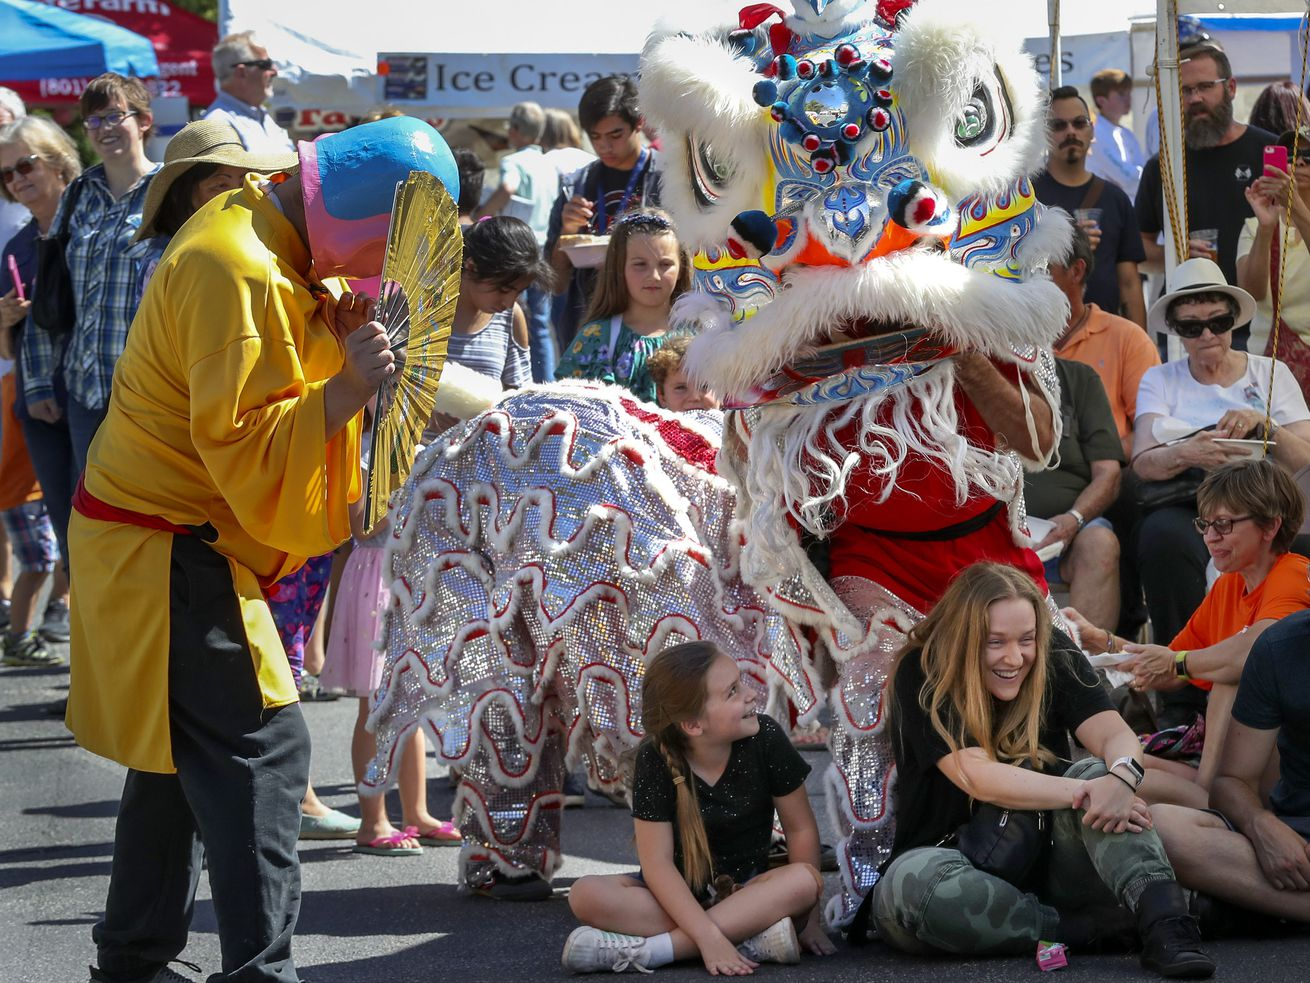 Photos: 'Lion' in wait — Crowd converges on Carmelite carnival